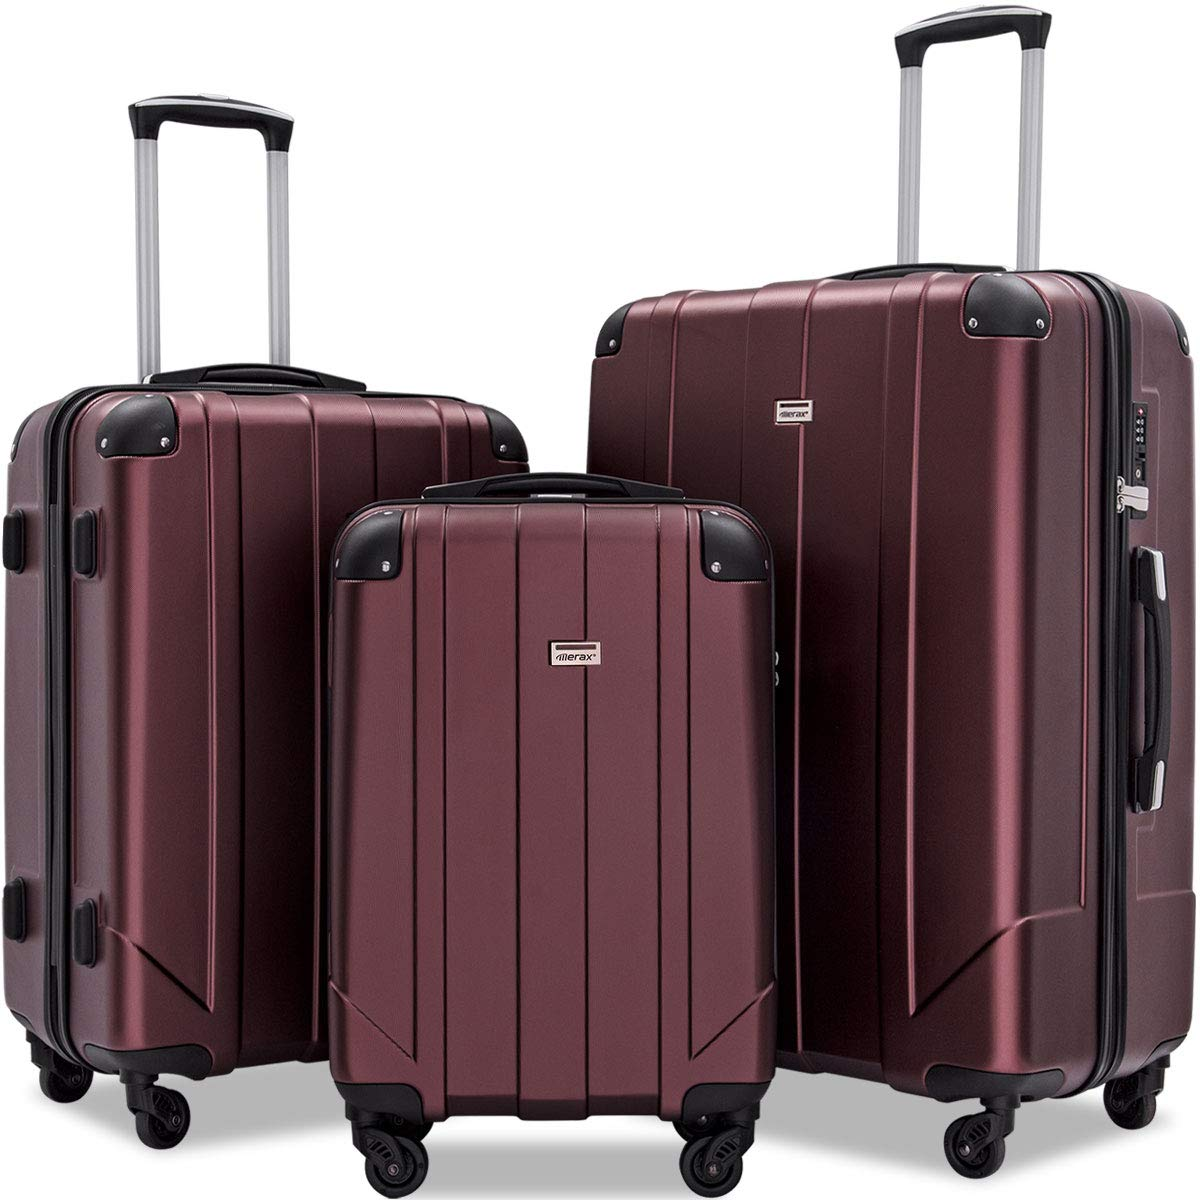 Merax 3 Pcs Luggage Set with Built-in TSA and Reinforced Corners, Eco-friendly P.E.T Light Weight Spinner Suitcase Set (Mahogany)